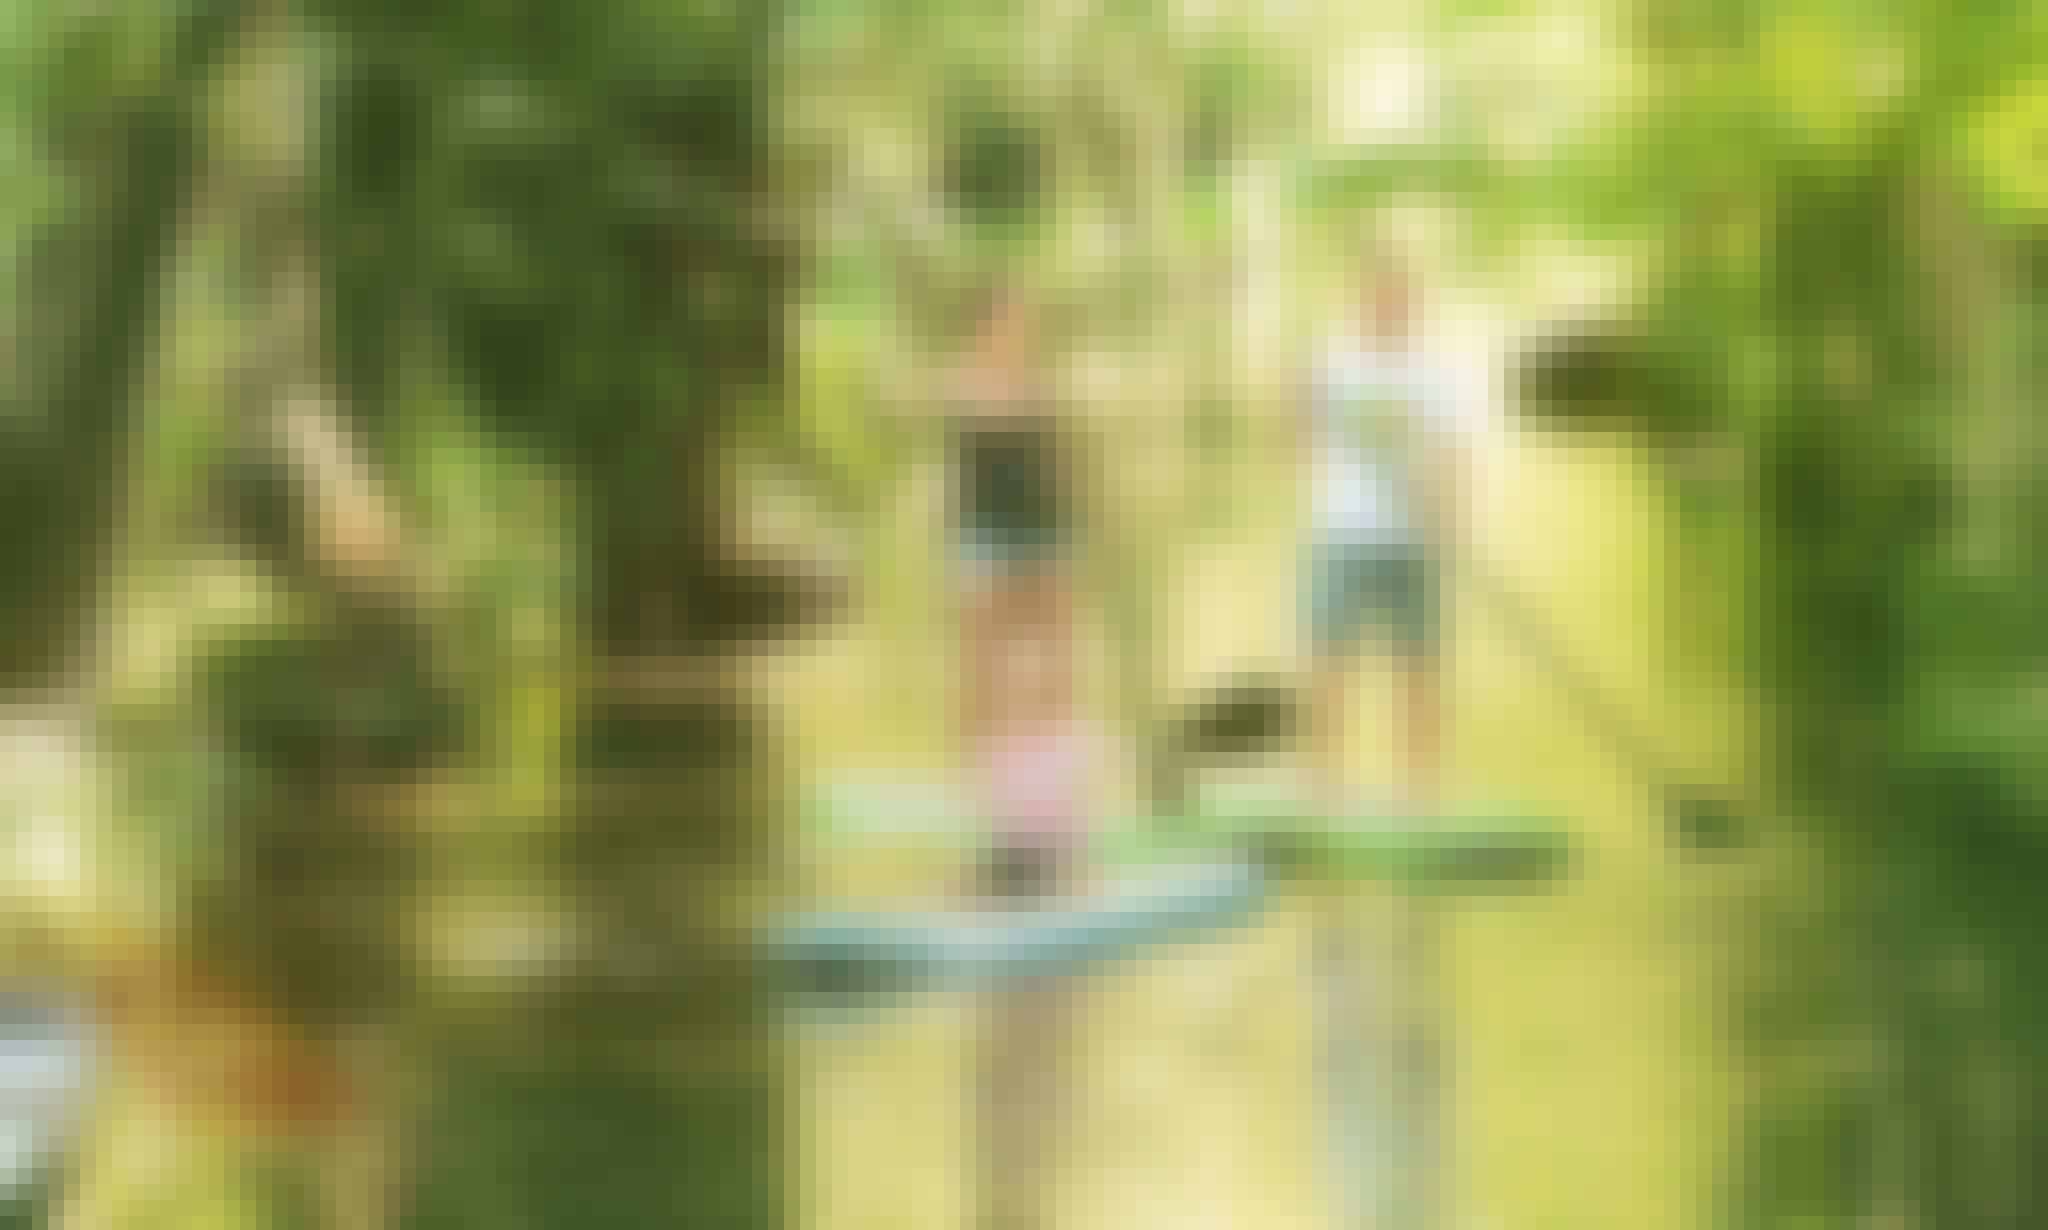 Paddleboard Tours and Courses in Burg (Spreewald)